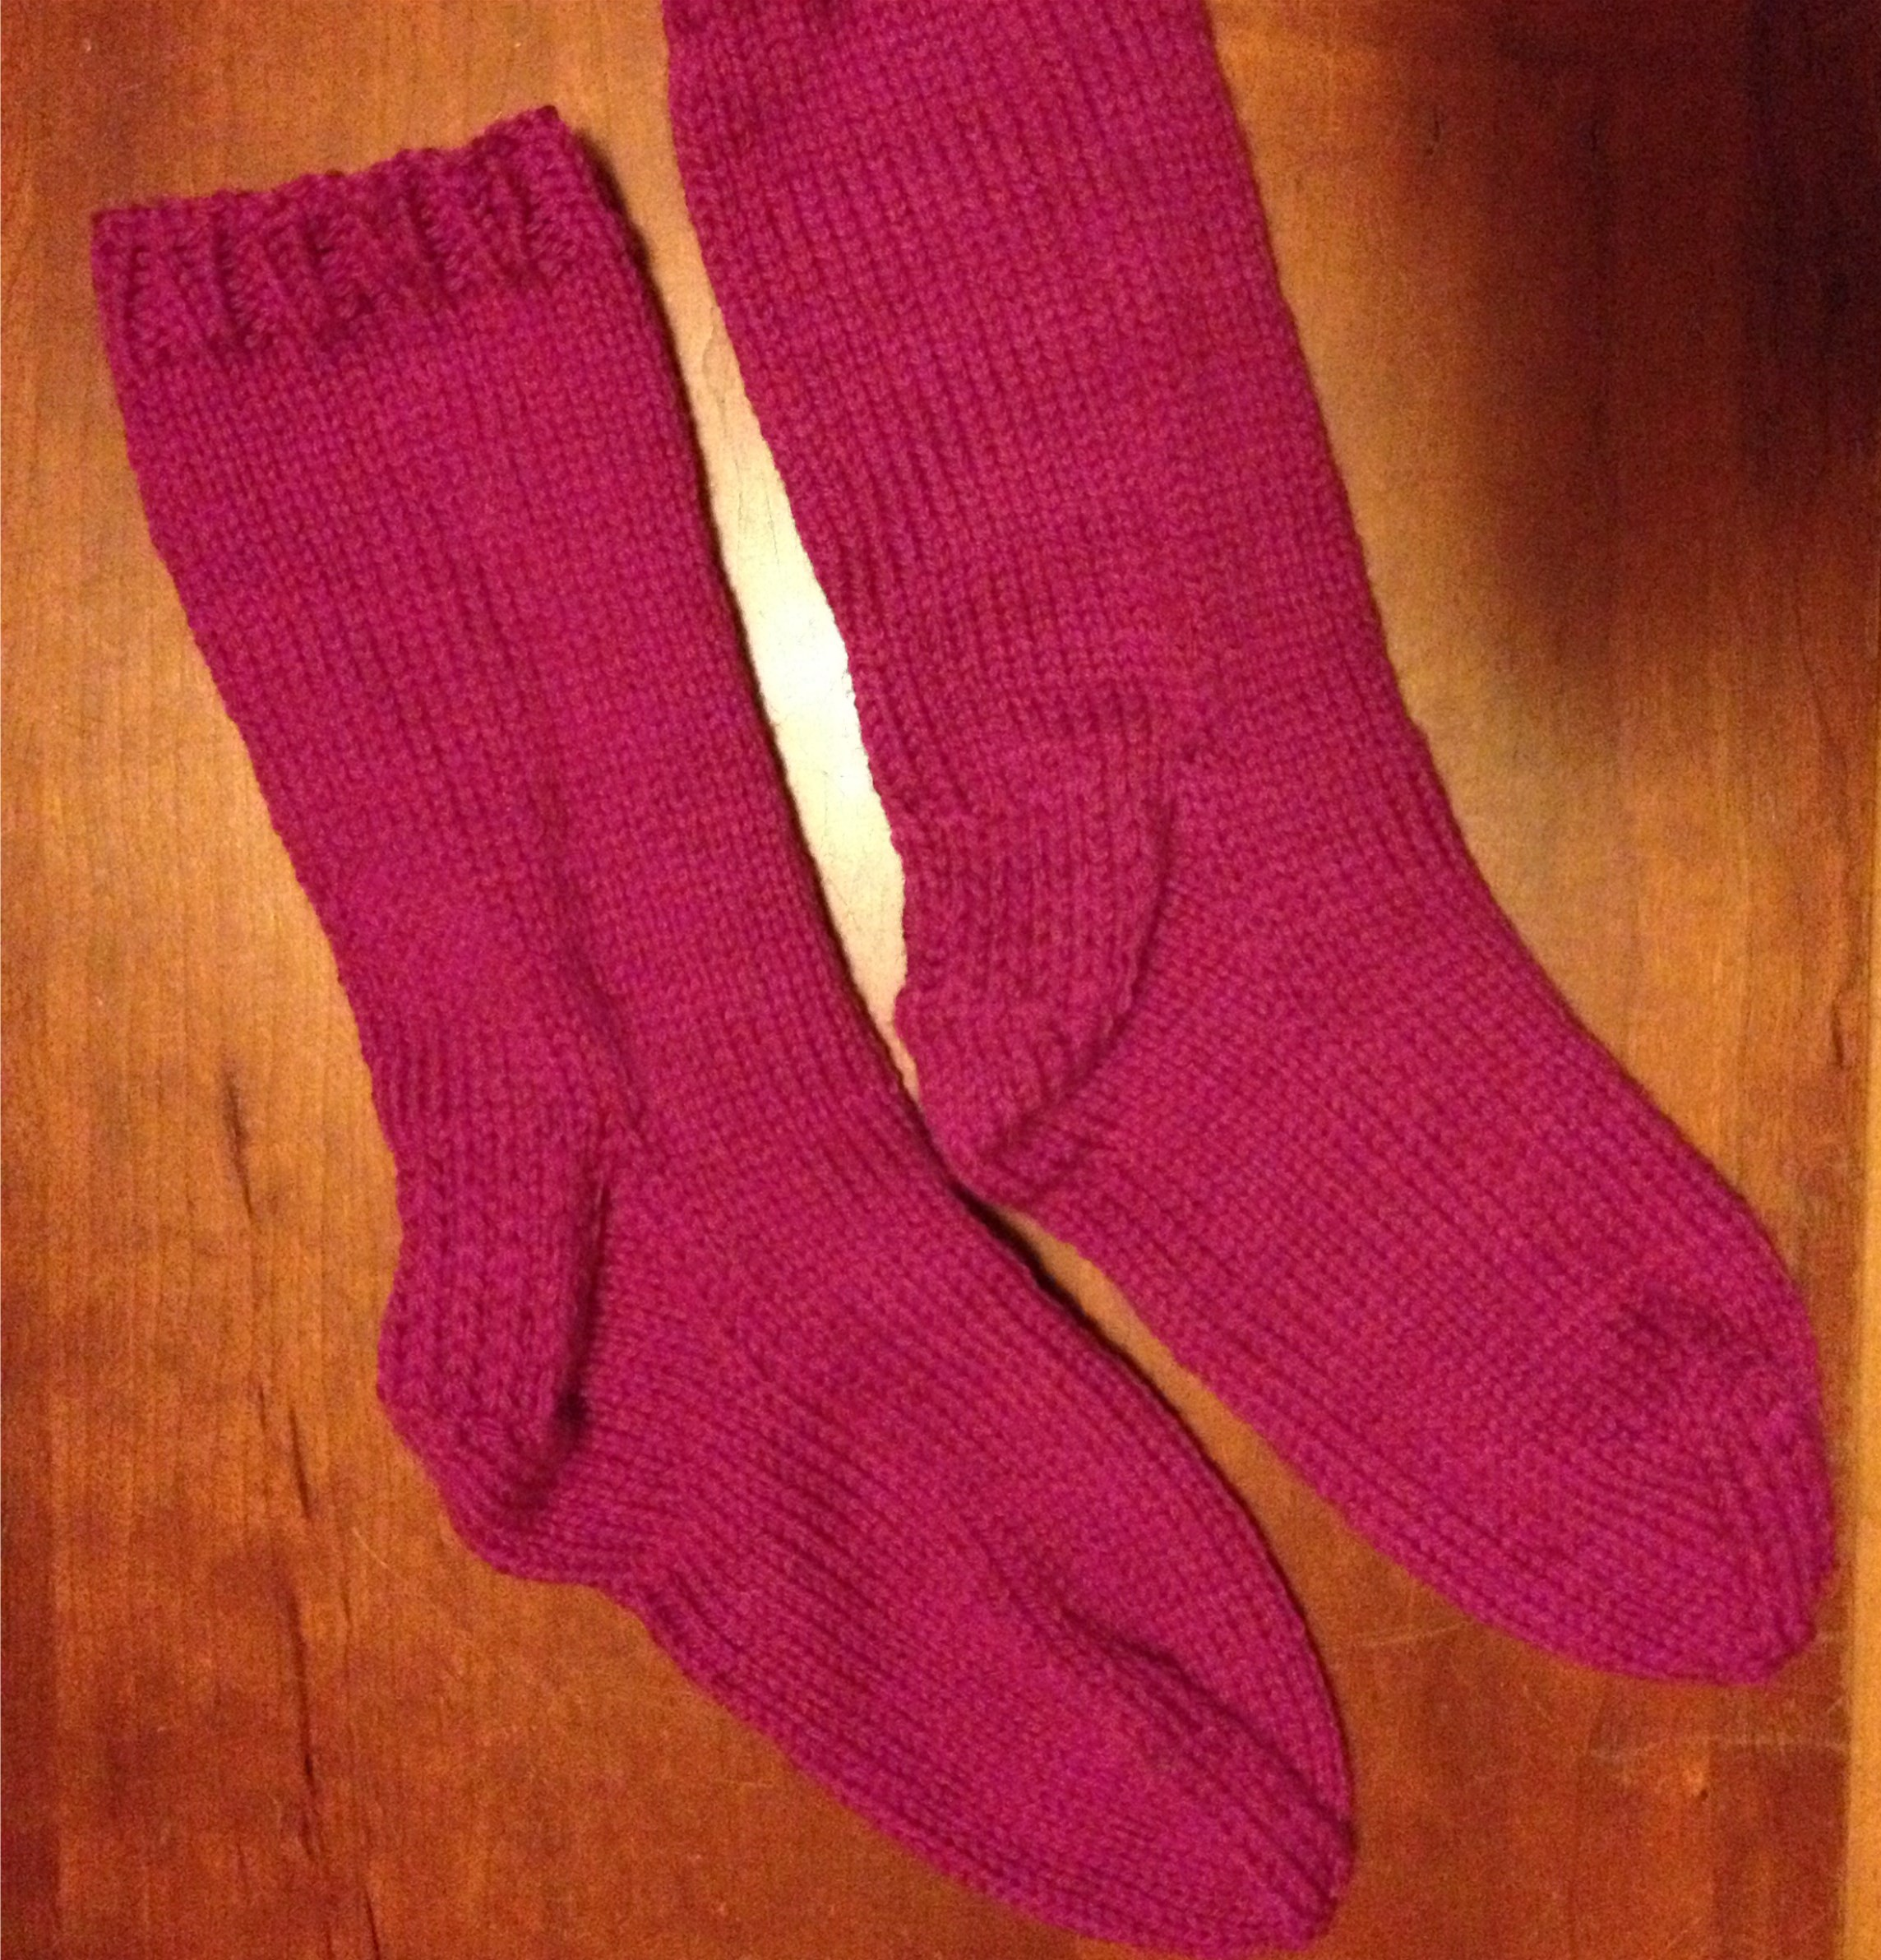 Knitting Pattern For Socks Using Circular Needles : My First Pair of Knitted Socks! hooked-on-crafting.com